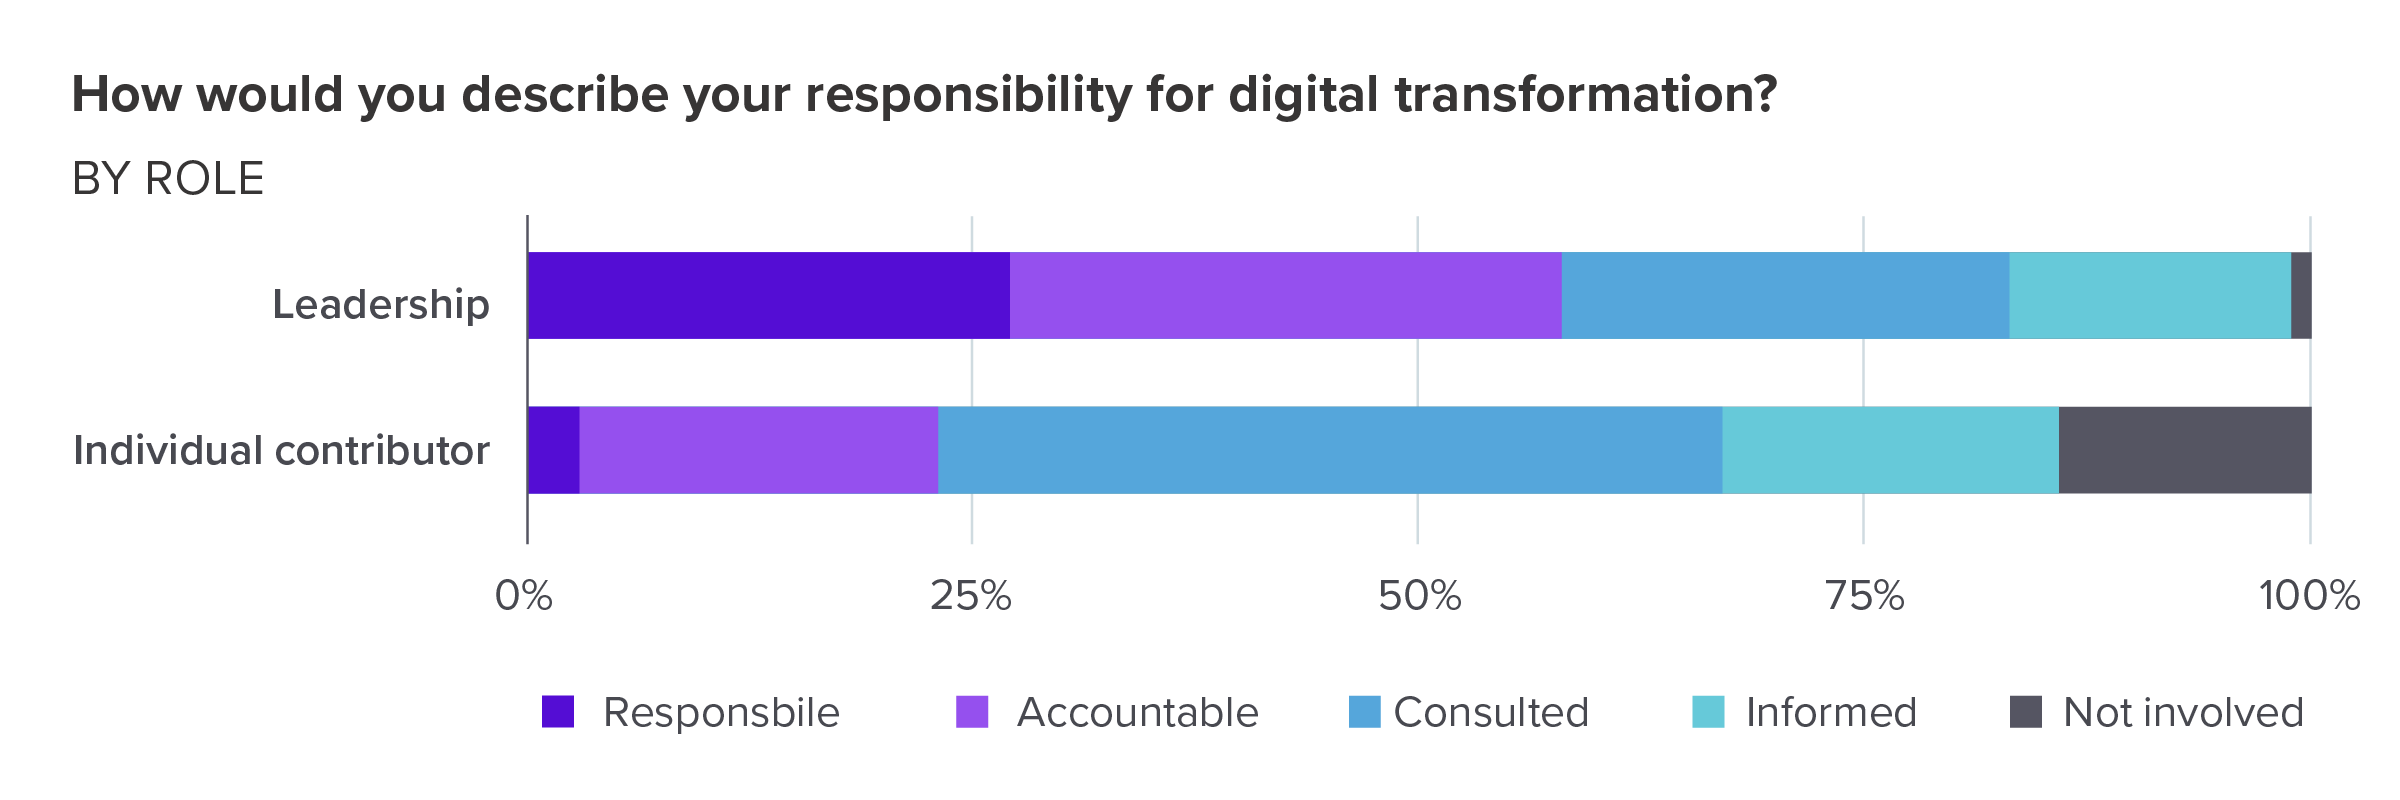 How would you describe your responsibility for digital transformation? By role